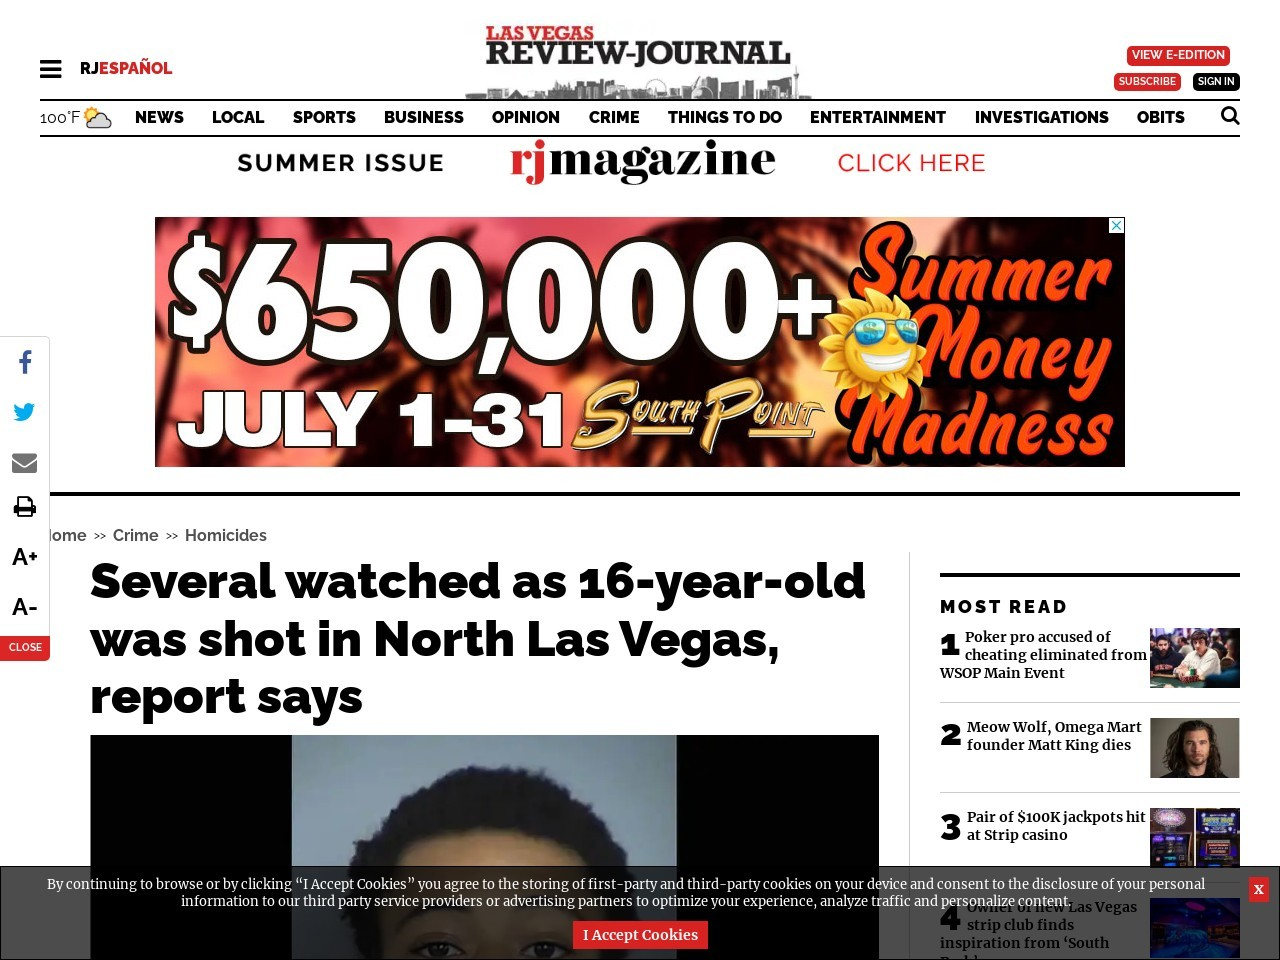 Several watched as 16-year-old was shot in North Las Vegas, report says